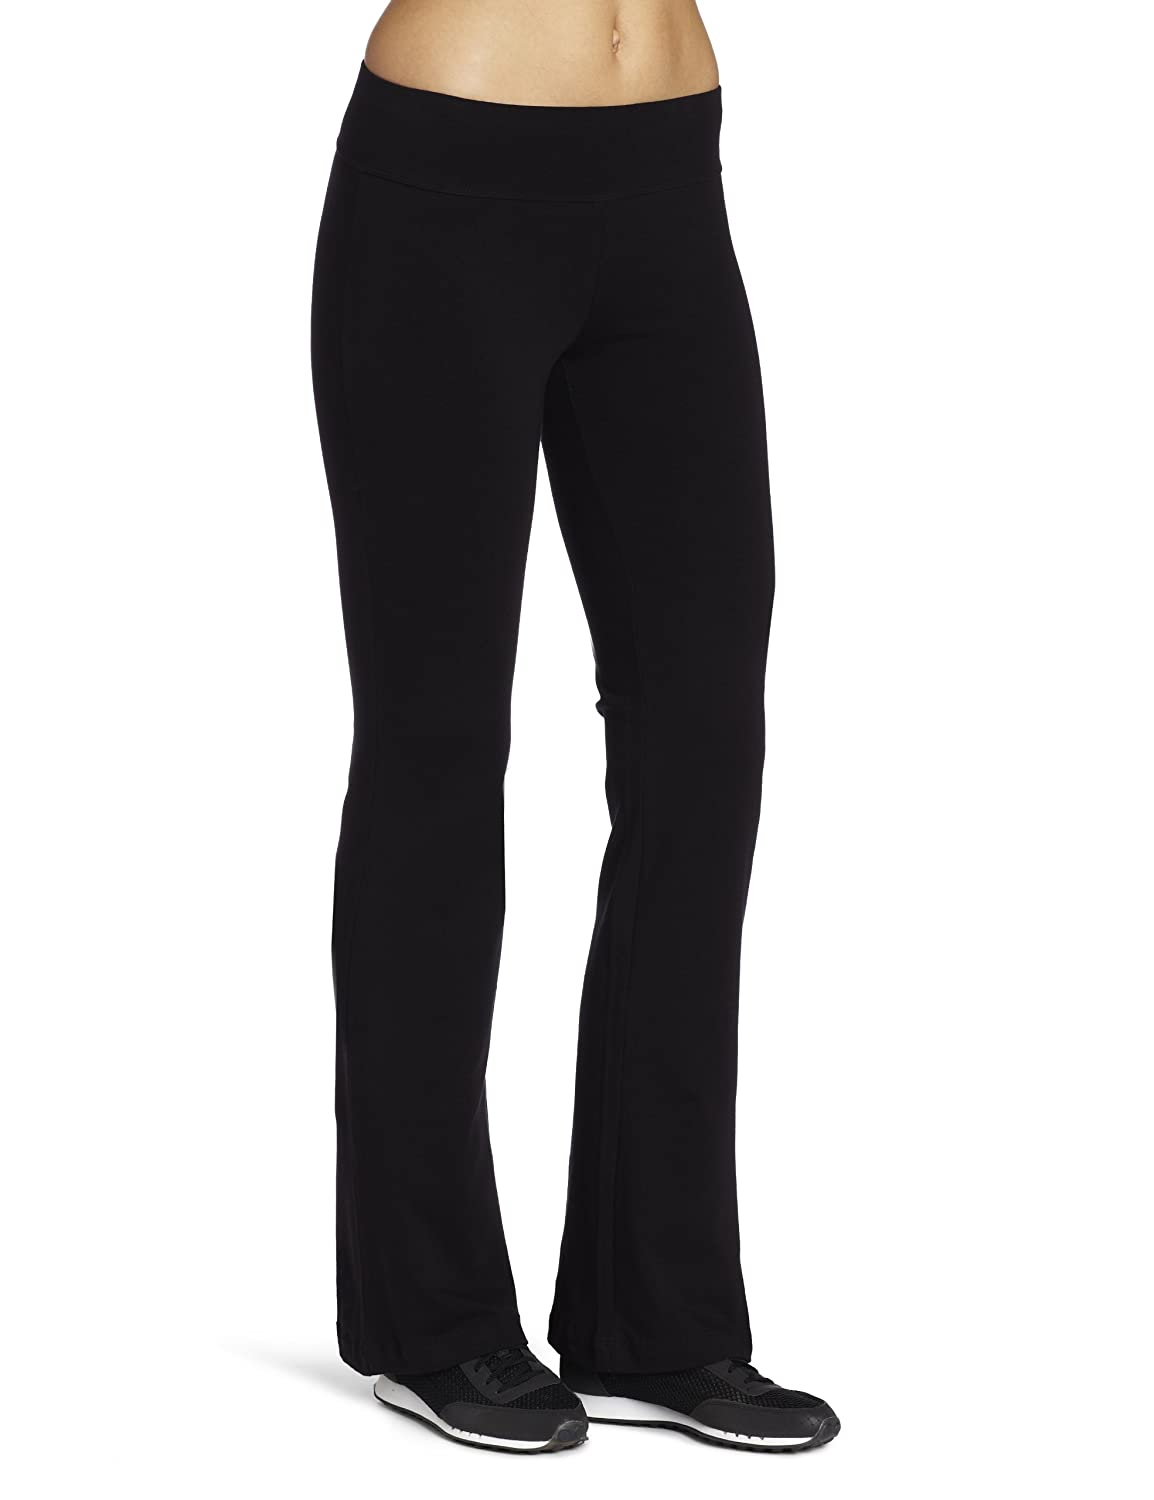 Spalding Women's BootLeg Yoga Pant at Amazon Women's Clothing ...